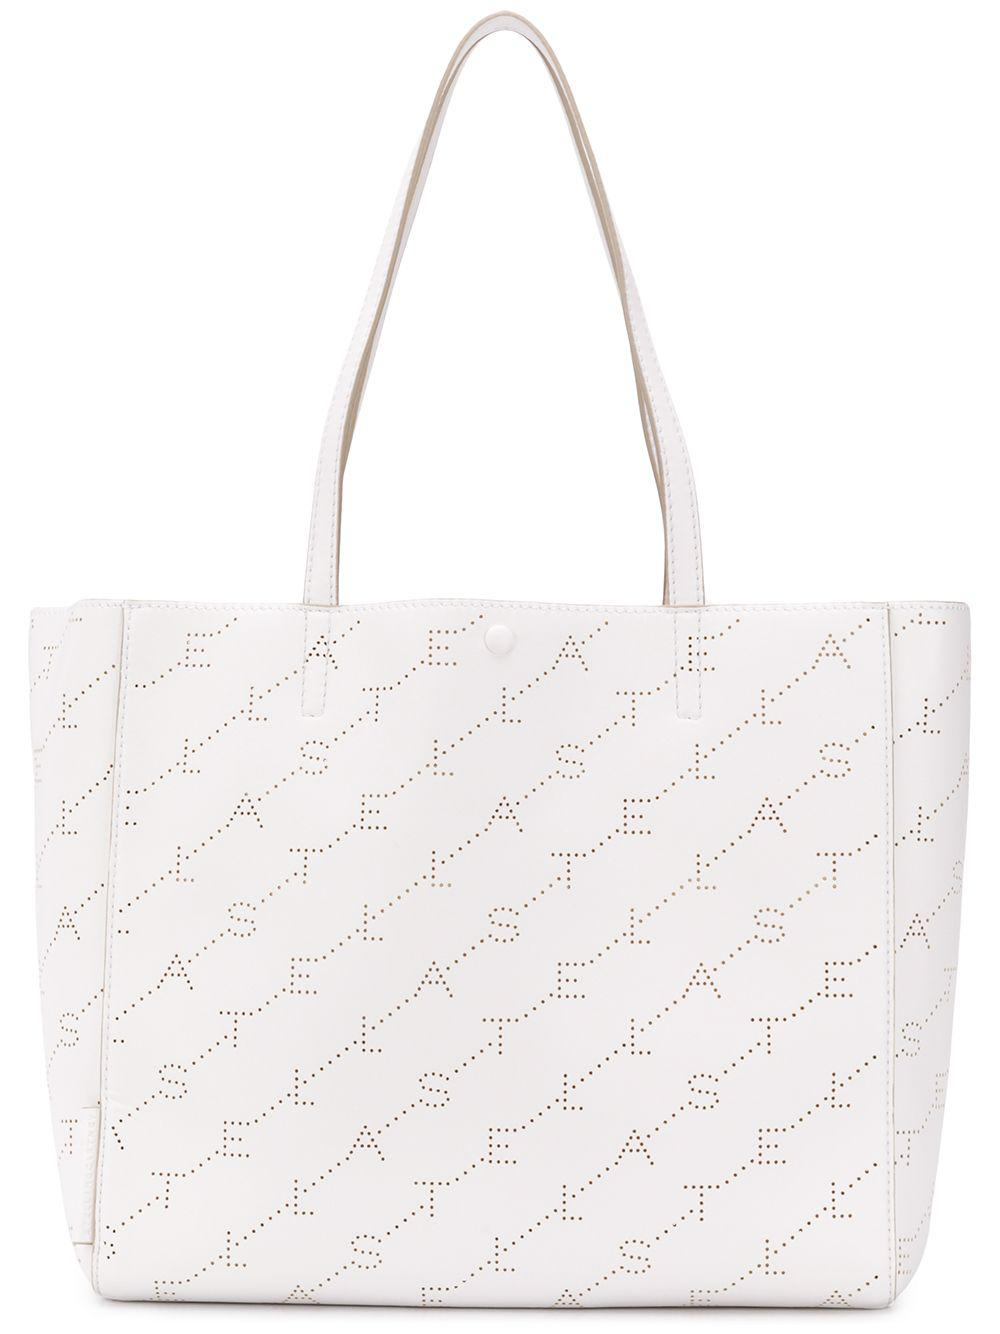 637e91632048 Lyst - Stella Mccartney Tote Bag in White - Save 55.97989949748744%